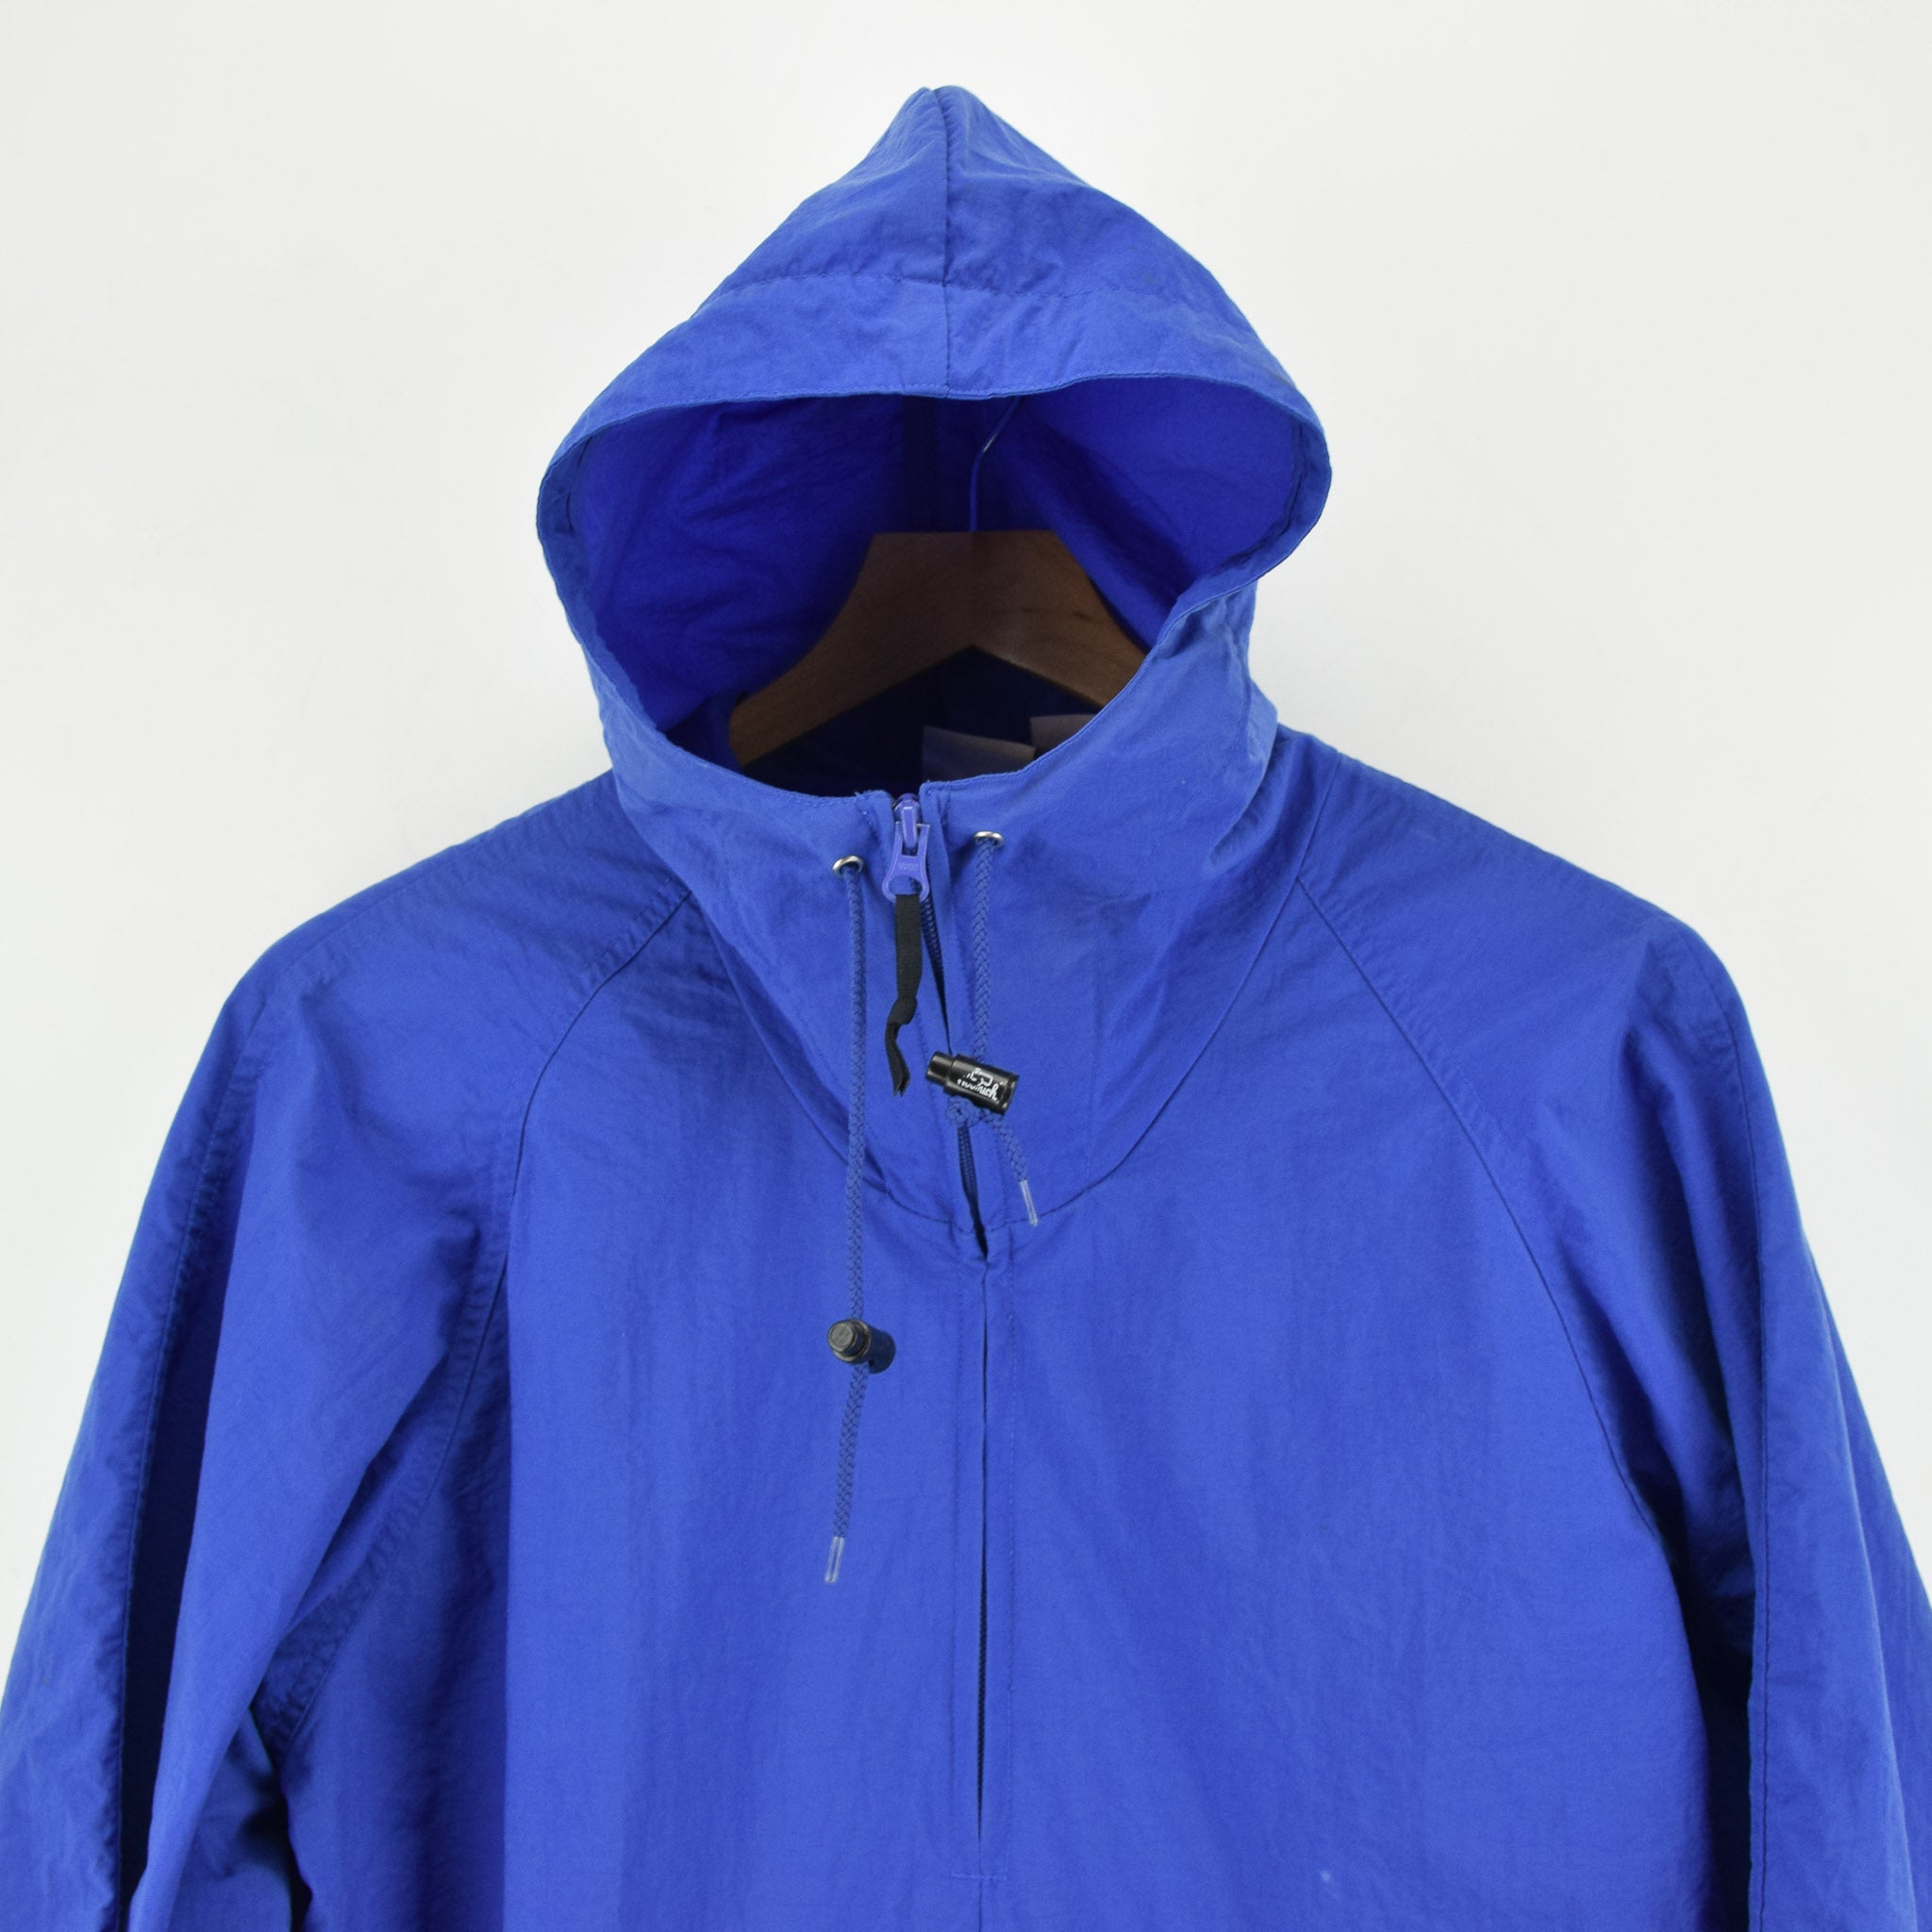 Woolrich Bright Blue Hooded Nylon Packaway Cagoule Unisex Jacket S chest hood zip